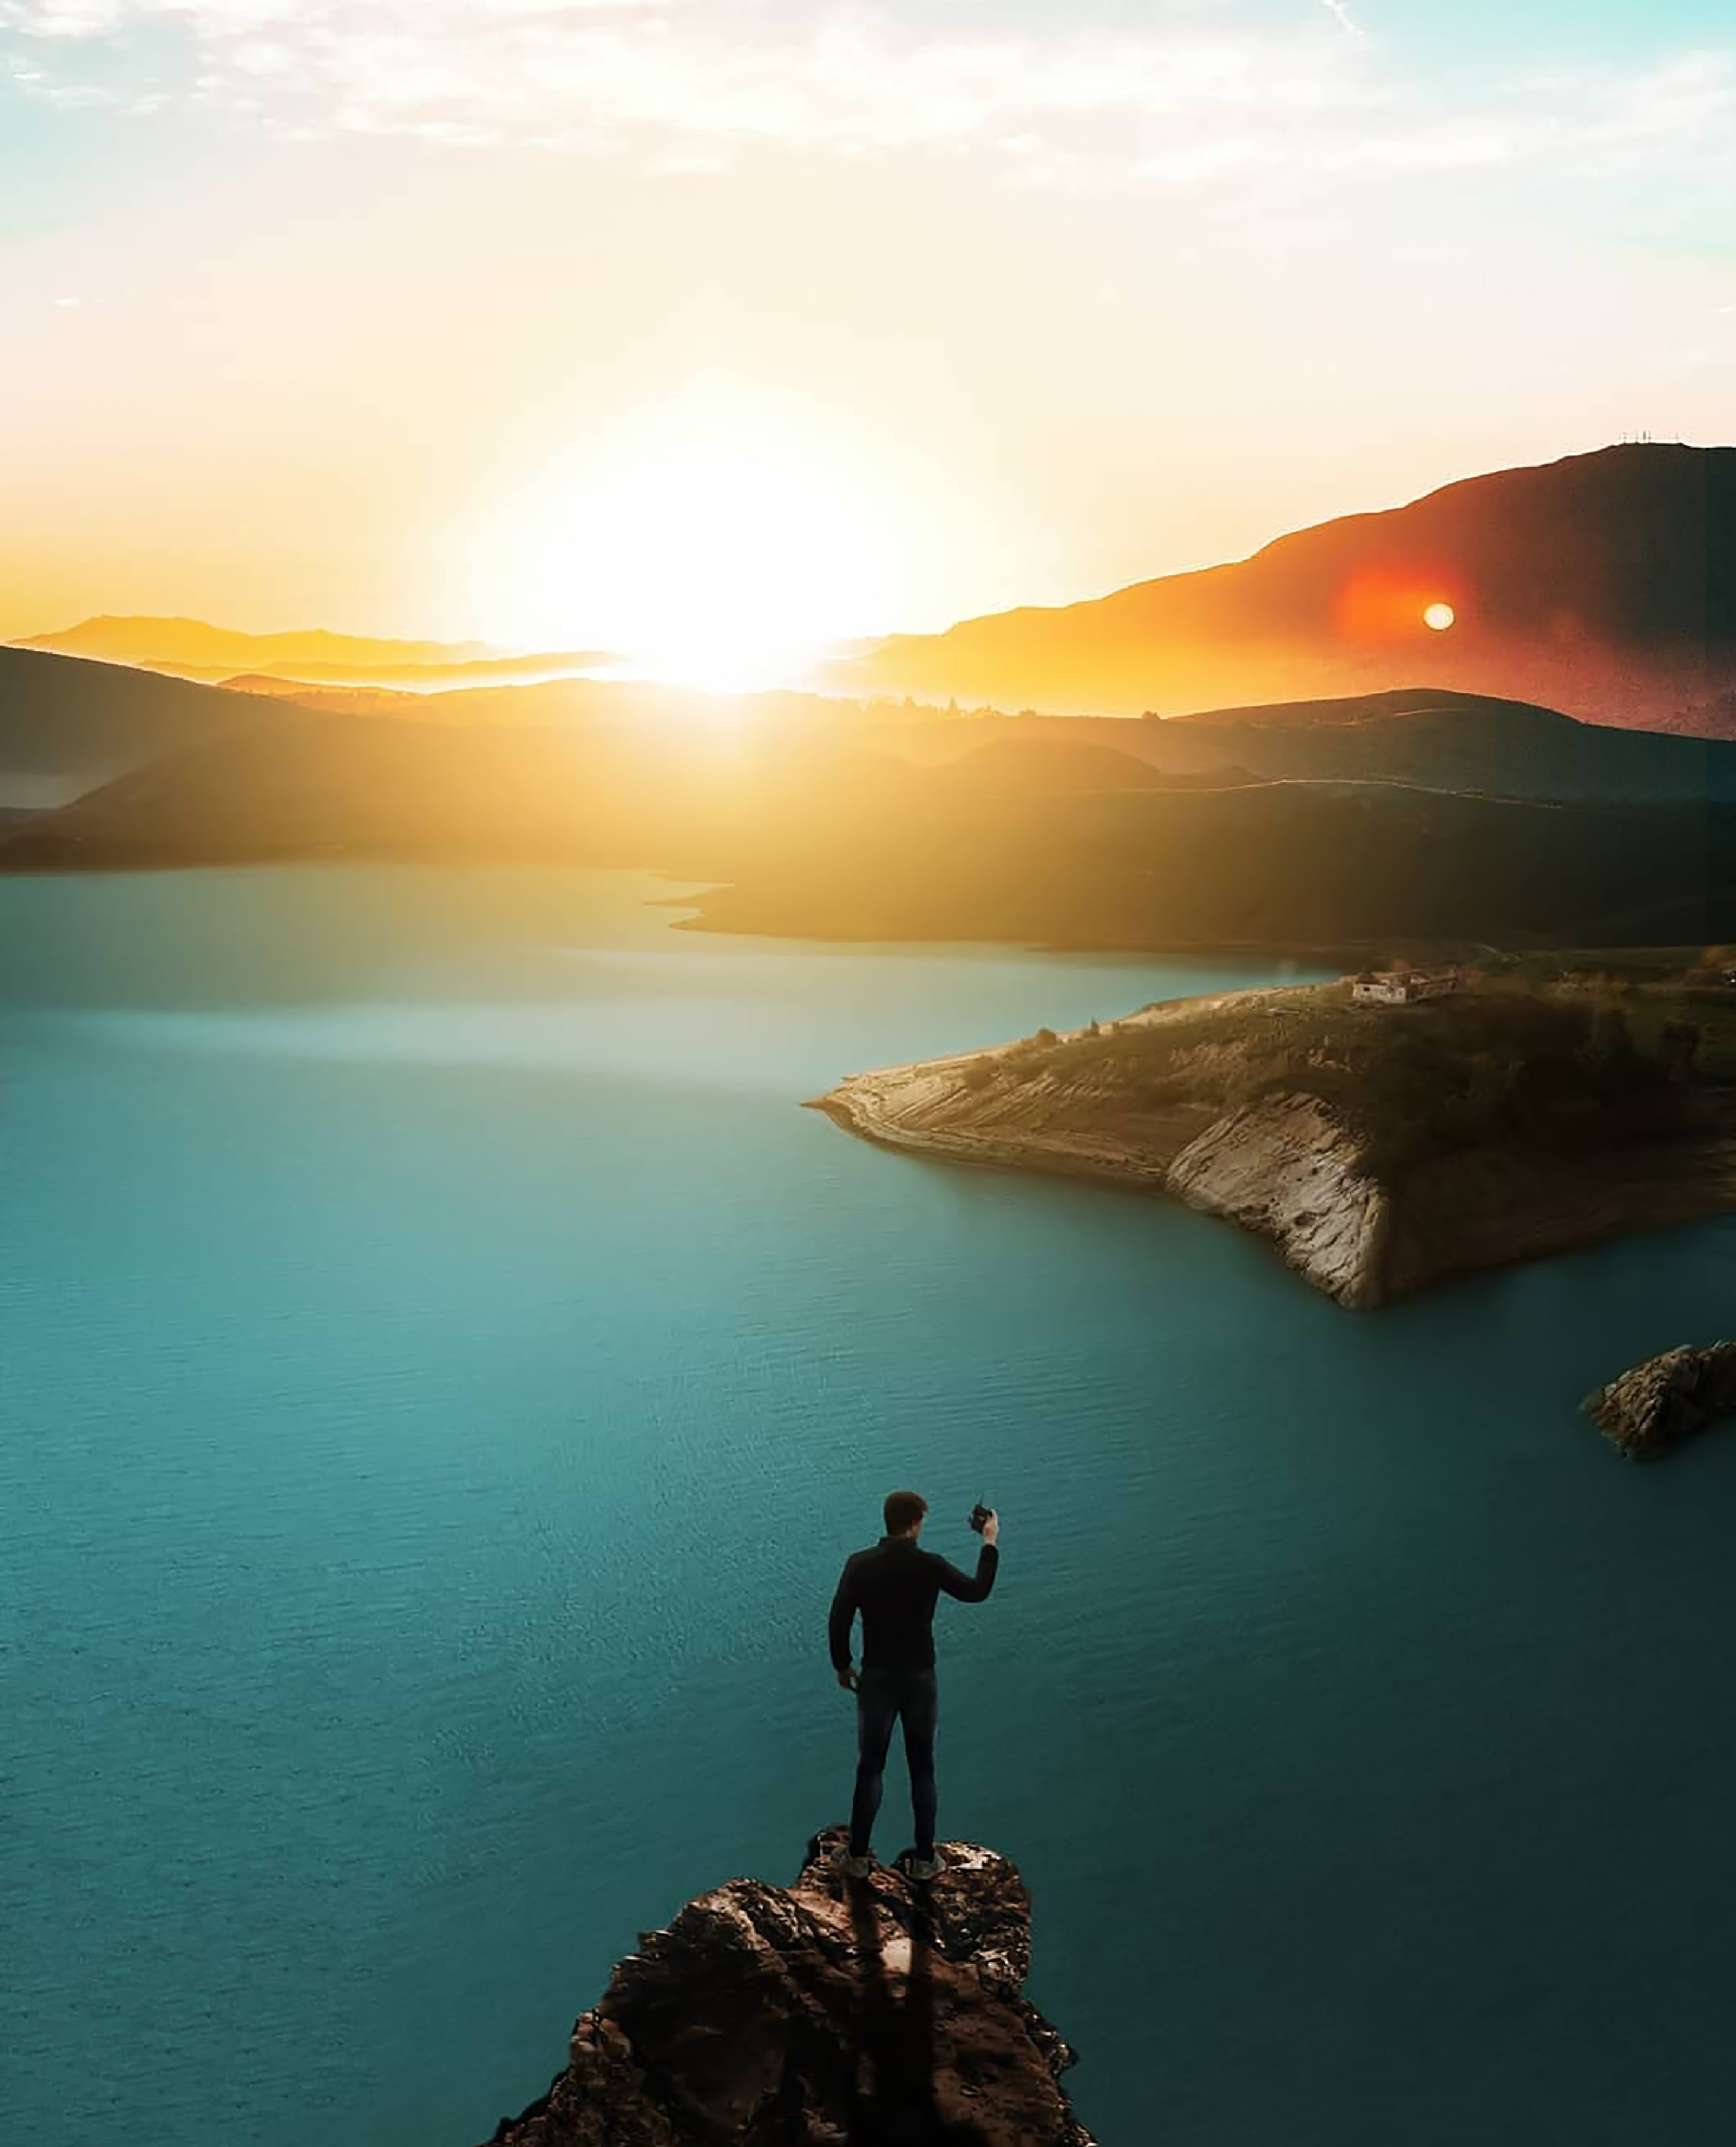 man standing on top of cliff above body of water during golden hour